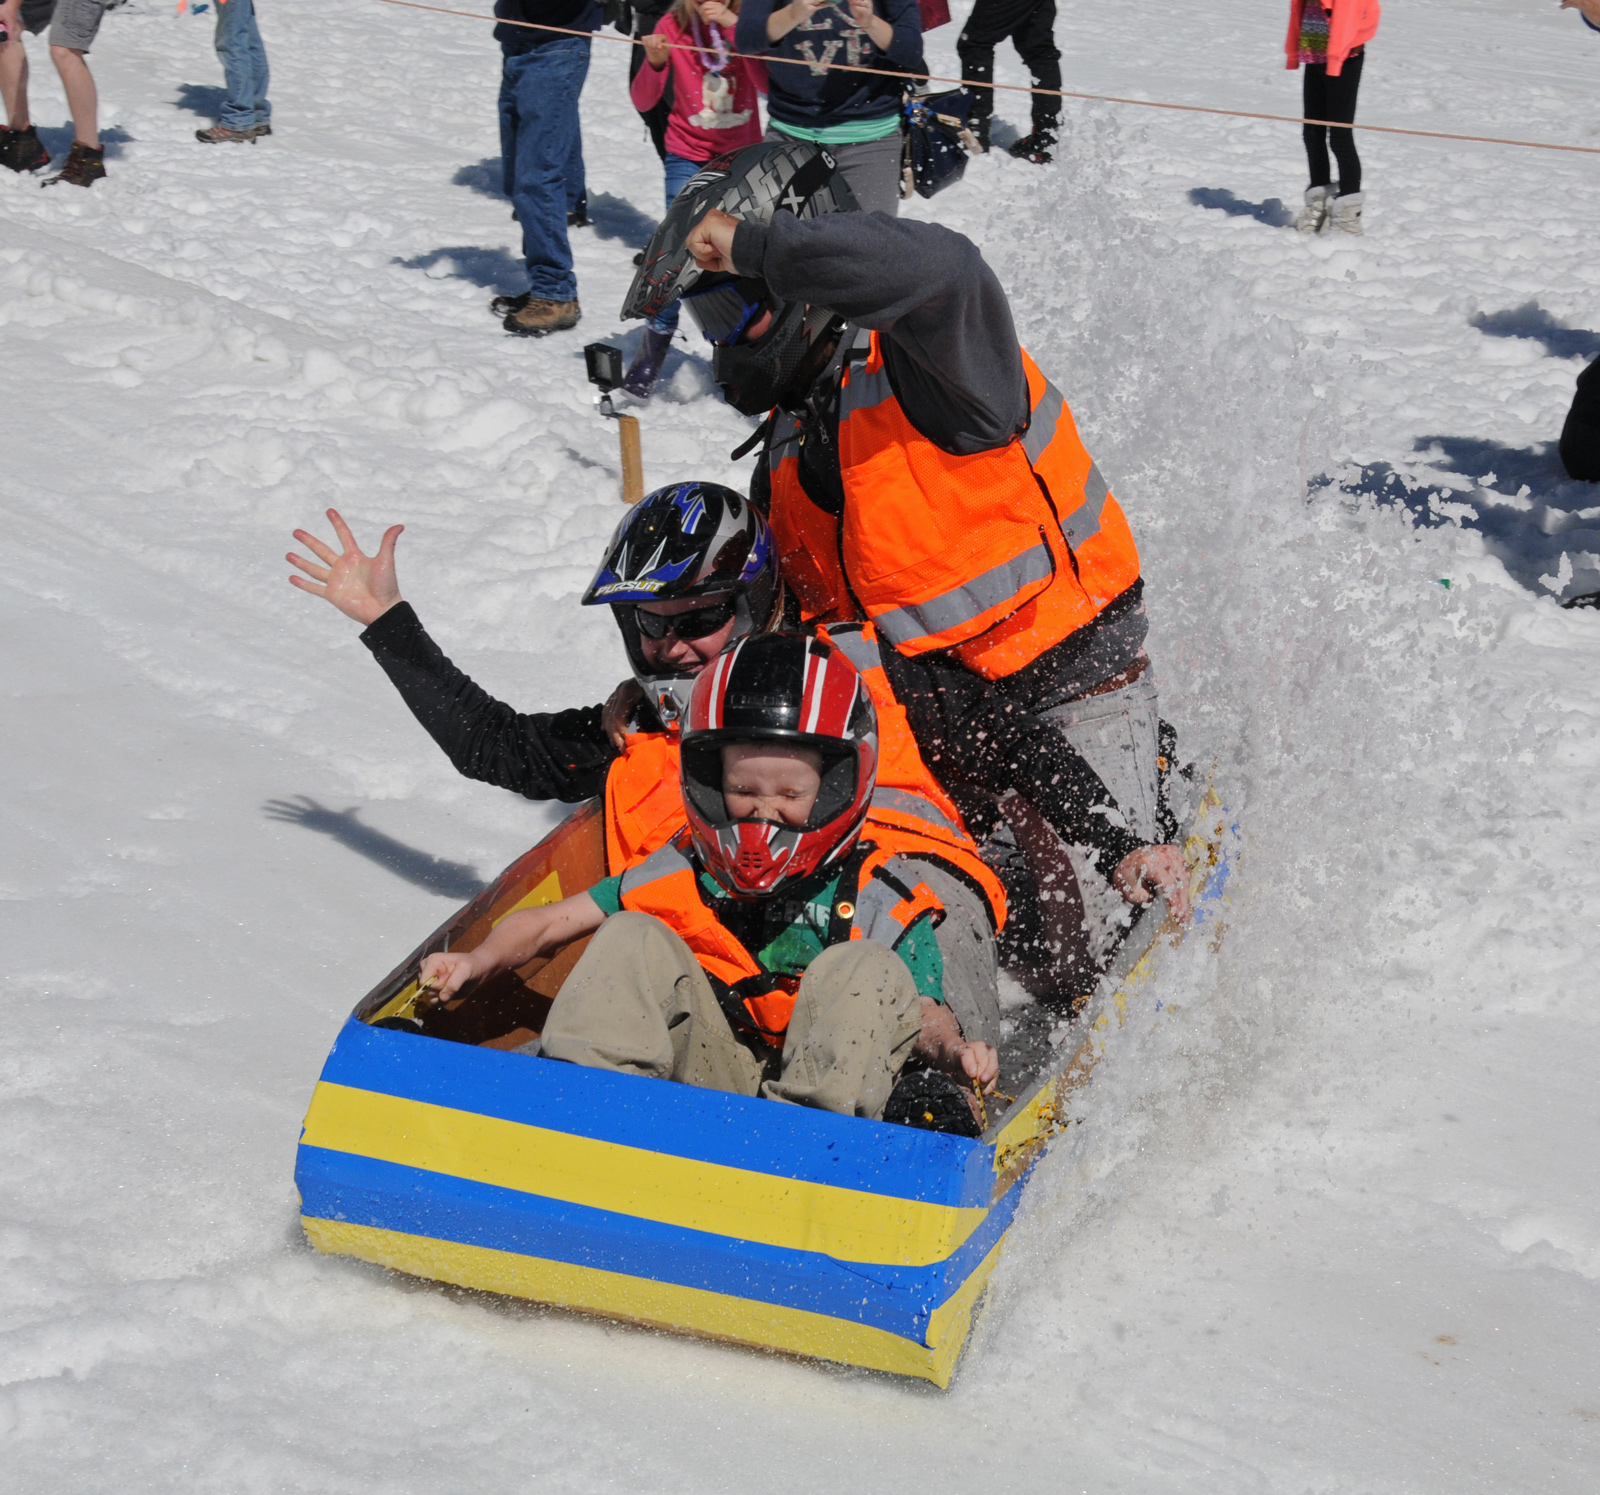 team KXLY in their sled